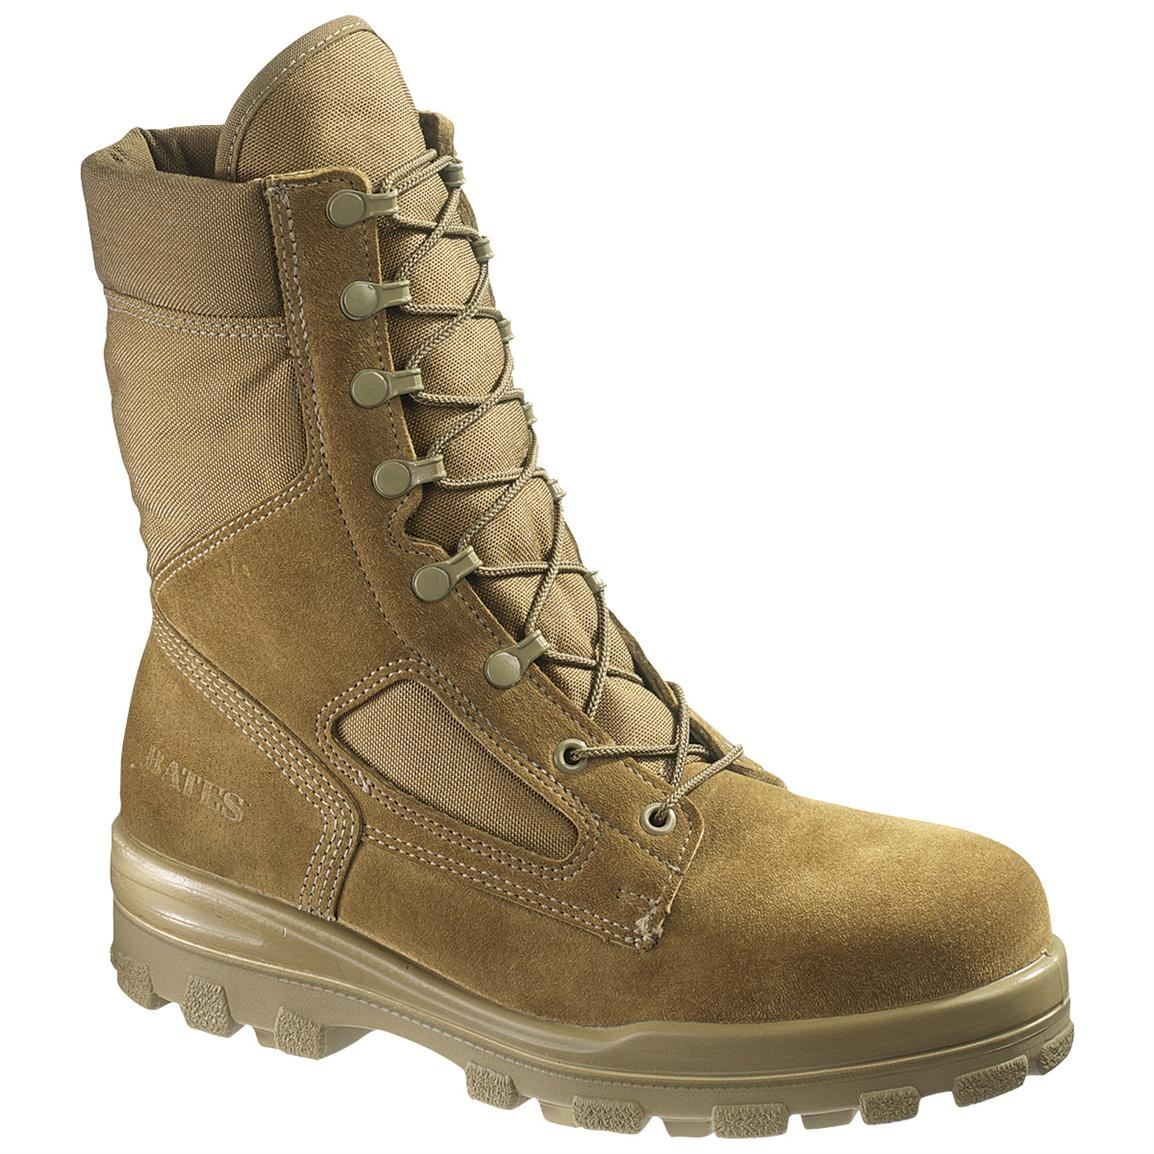 Men's Bates® DuraShocks® Steel Toe Boots, Olive Mojave